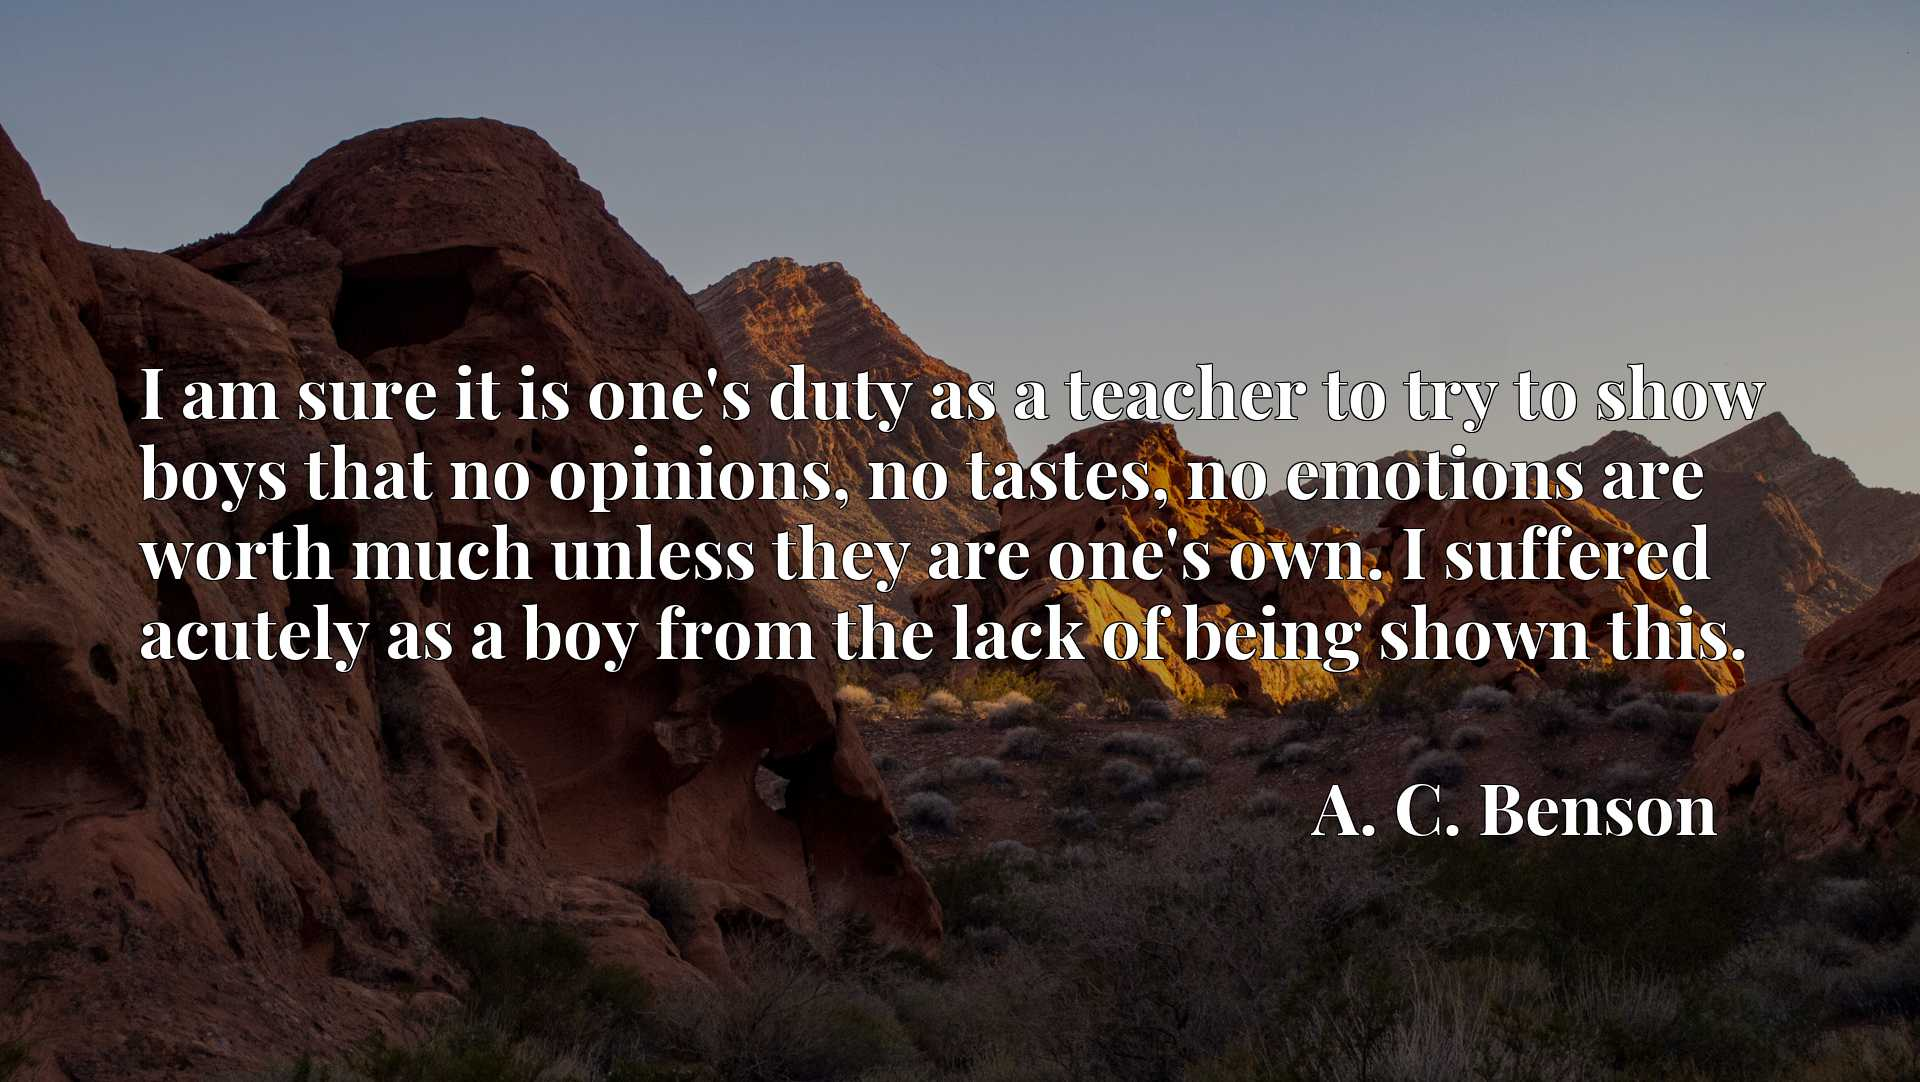 Quote Picture :I am sure it is one's duty as a teacher to try to show boys that no opinions, no tastes, no emotions are worth much unless they are one's own. I suffered acutely as a boy from the lack of being shown this.